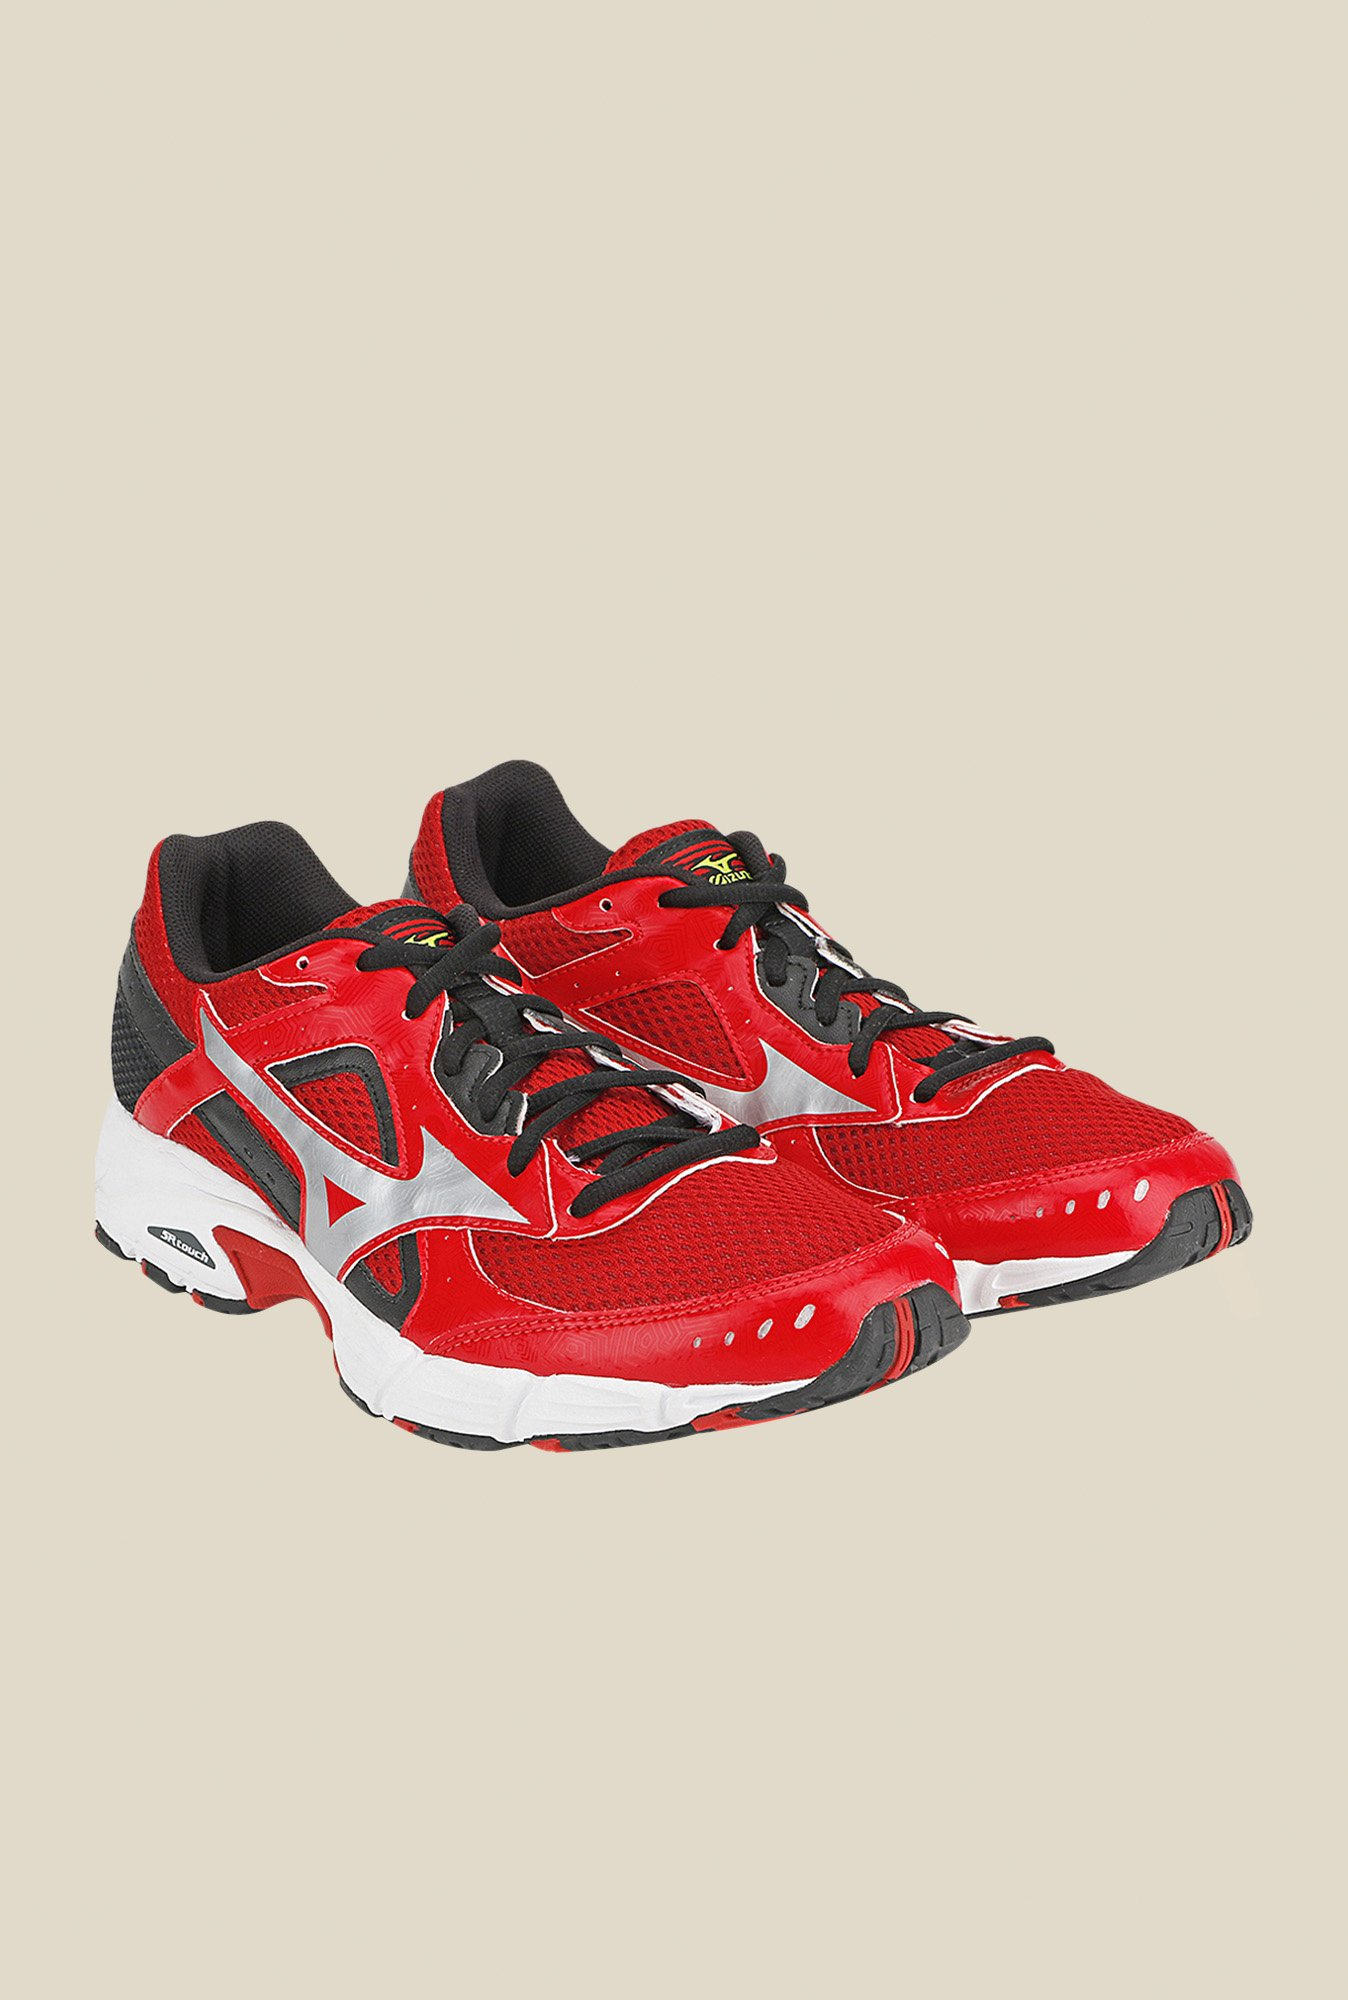 Mizuno Empower 3 Red & Silver Running Shoes